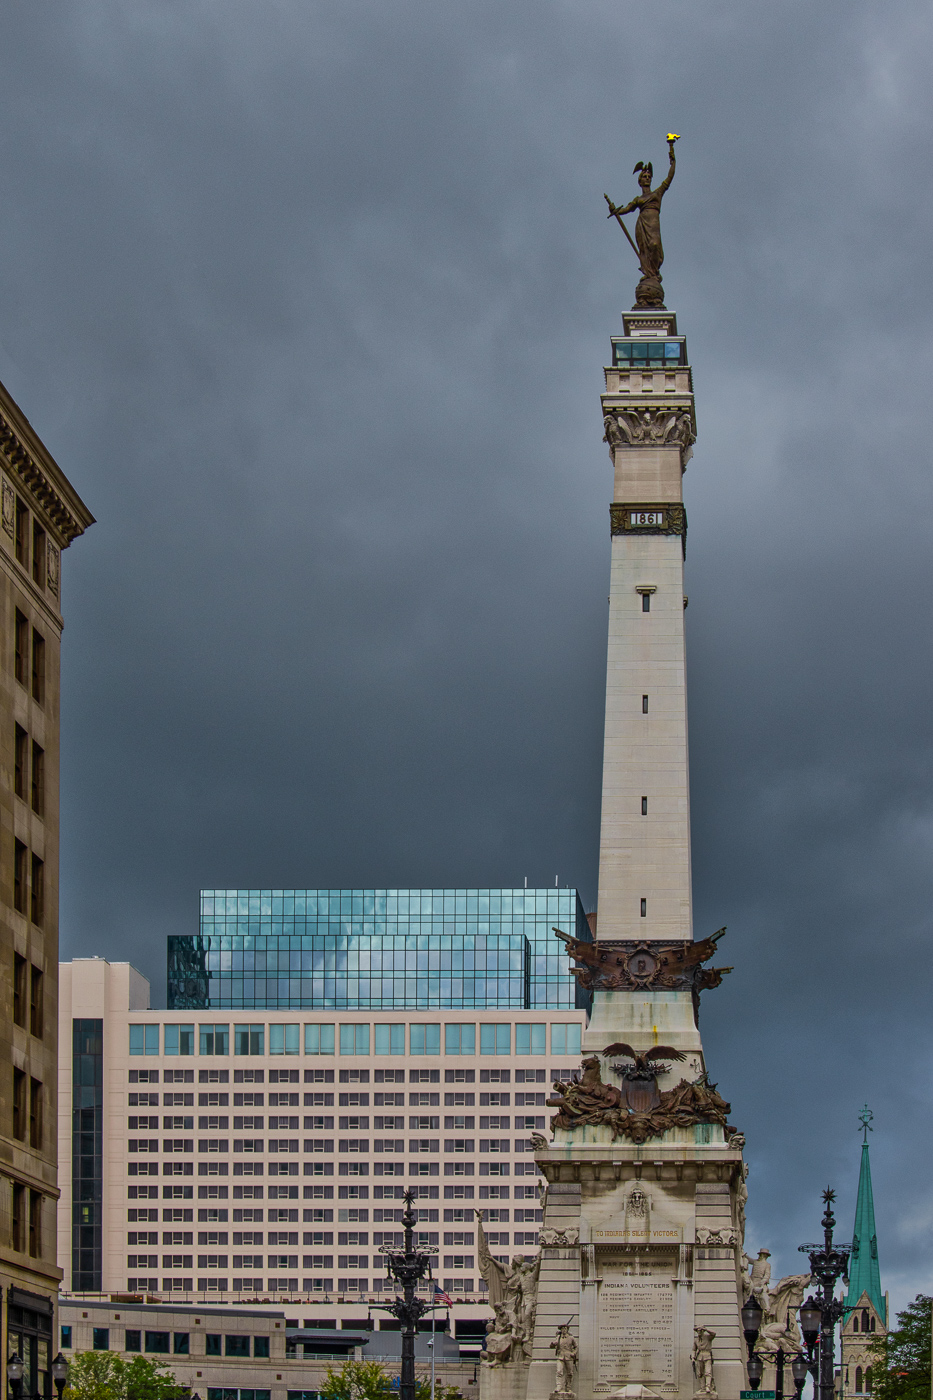 Click photo to view this and more from my  Indianapolis  gallery. Thank you.